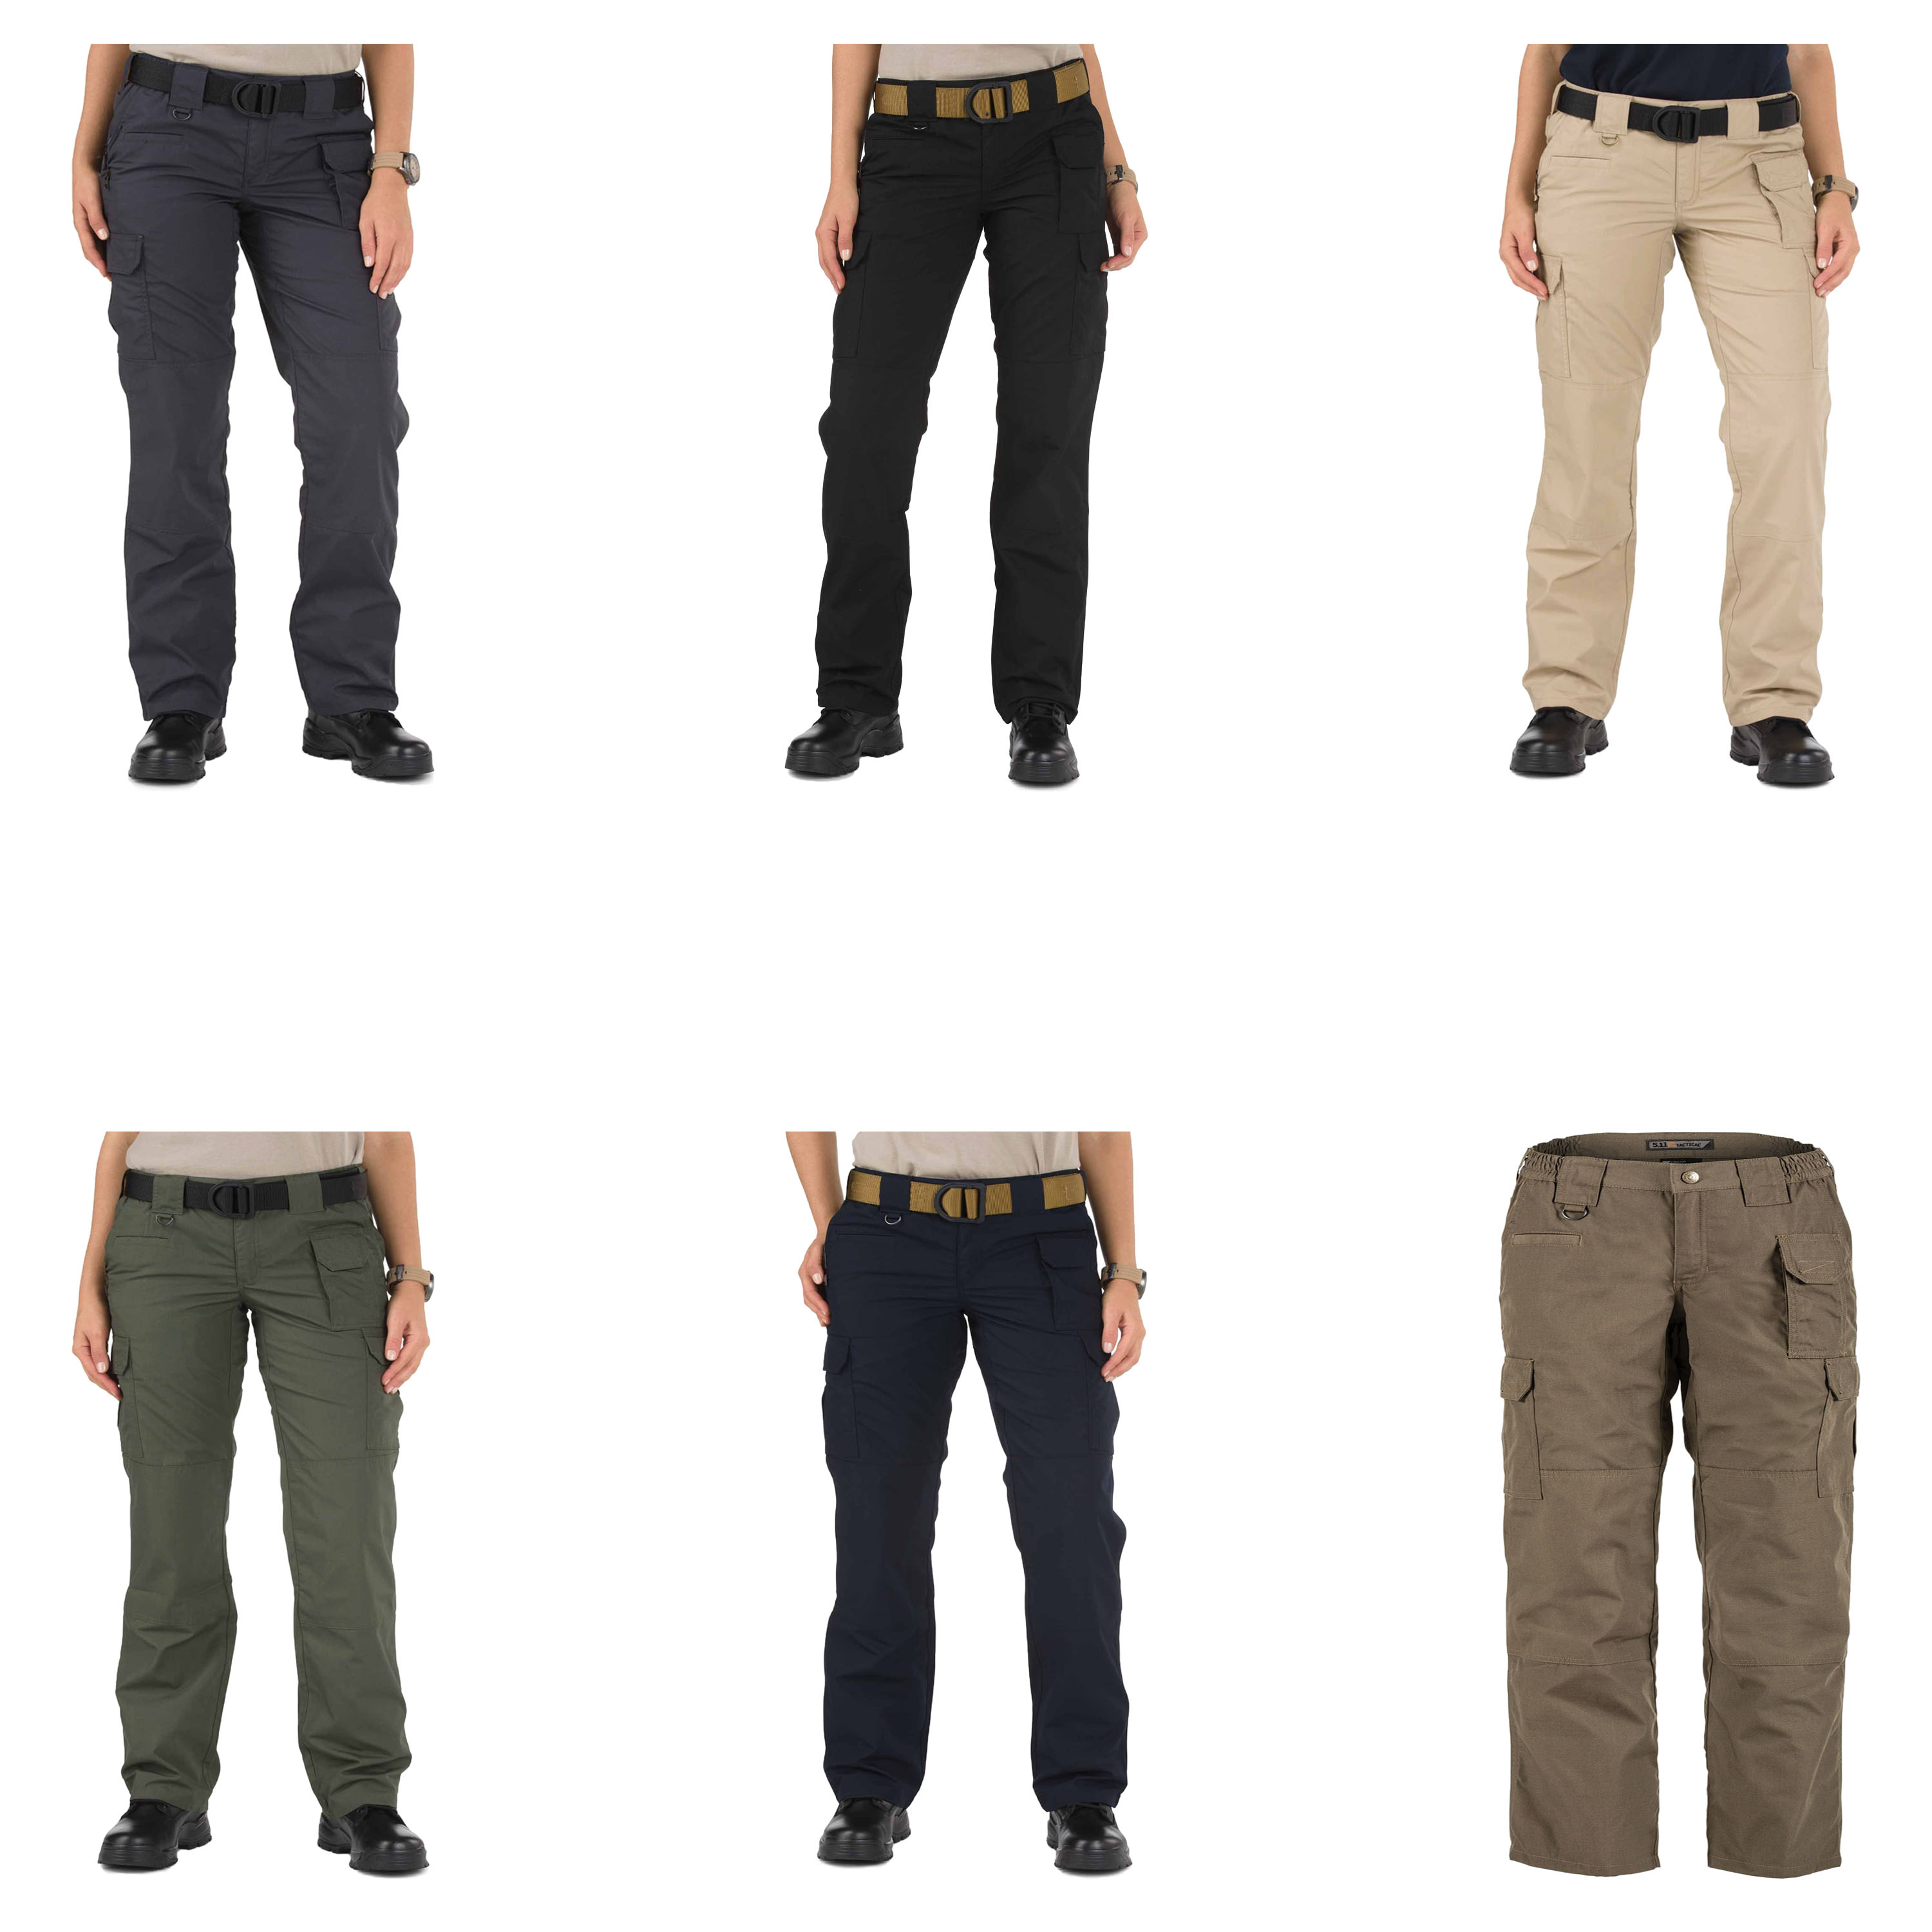 a464e04b0a667 5.11 Women s TACLITE PRO Tactical Pants